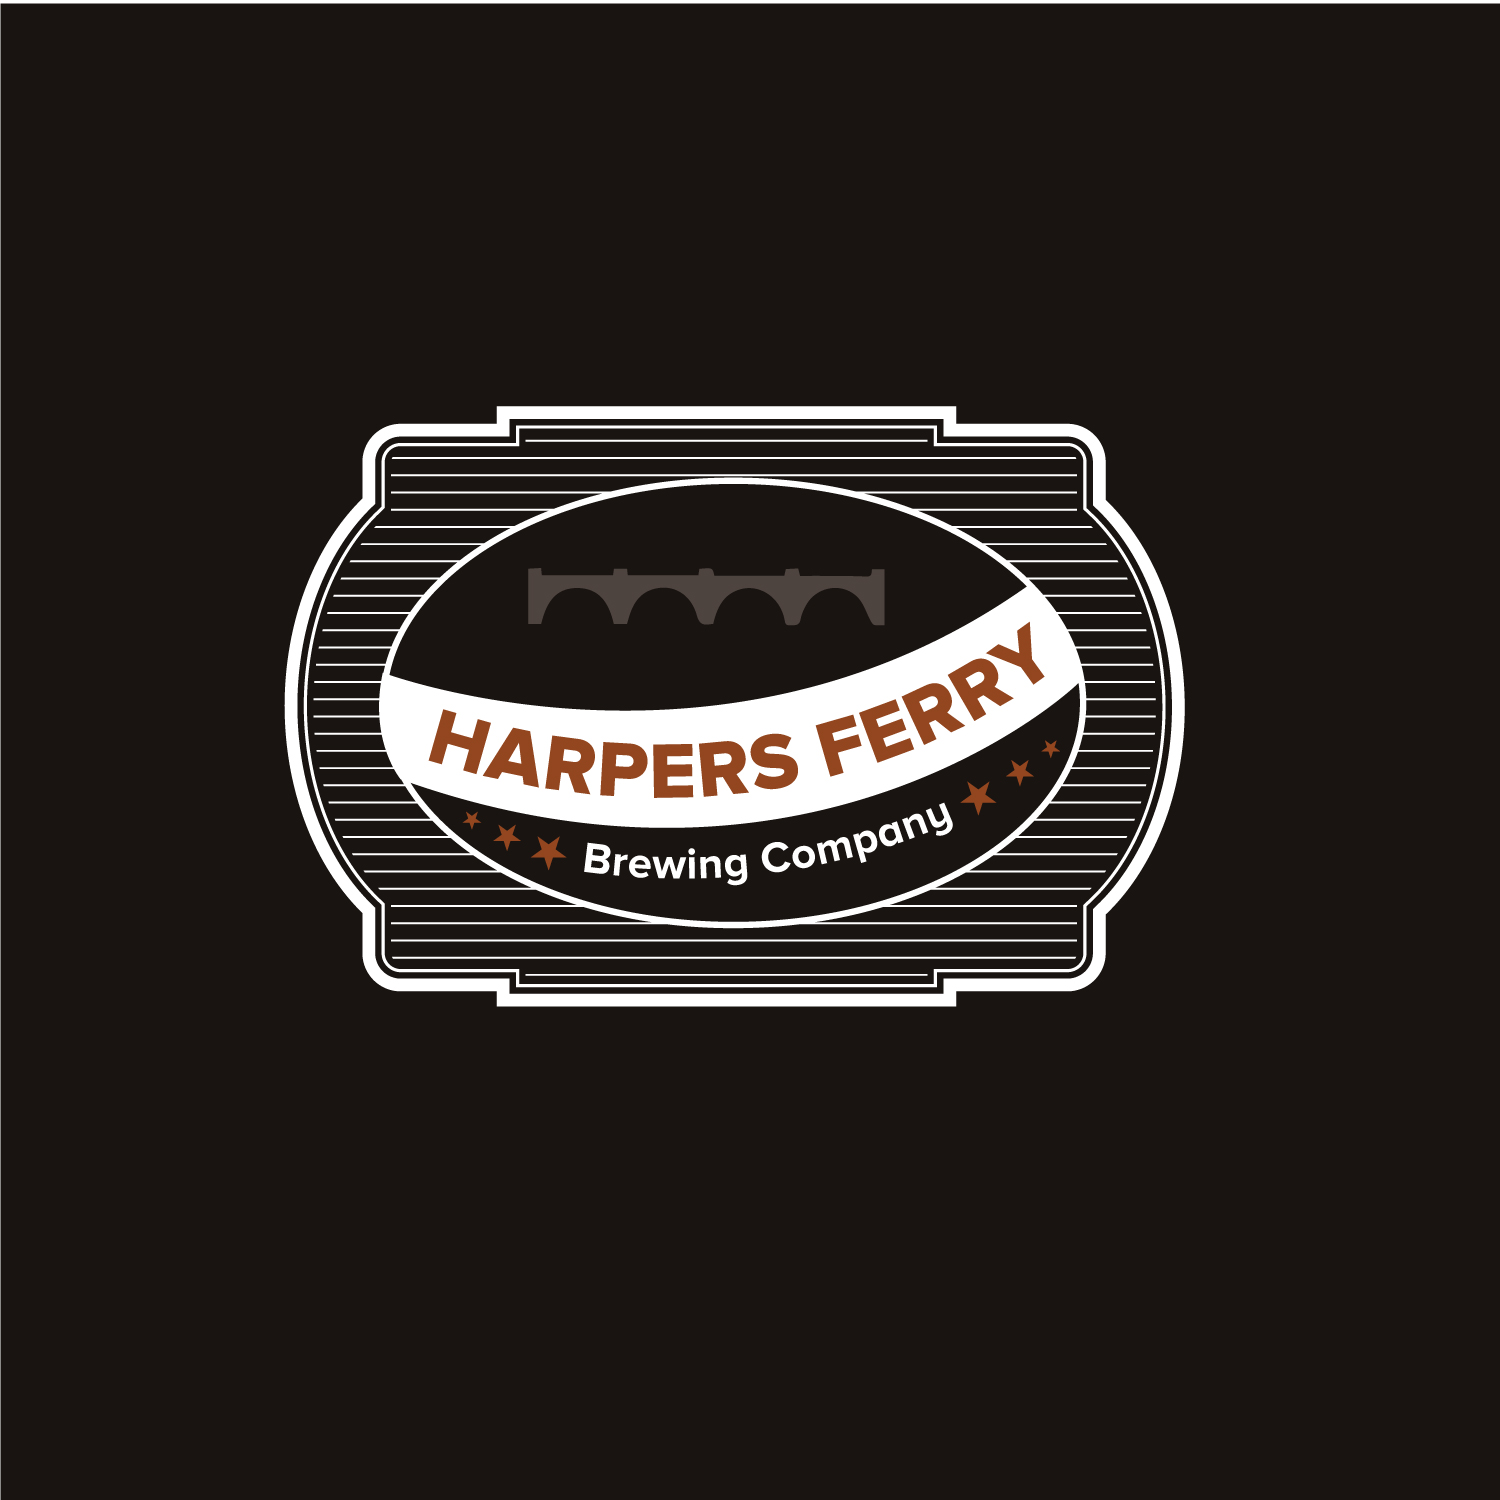 Logo Design by Bac Huu - Entry No. 39 in the Logo Design Contest Unique Logo Design Wanted for Harpers ferry brewing company.